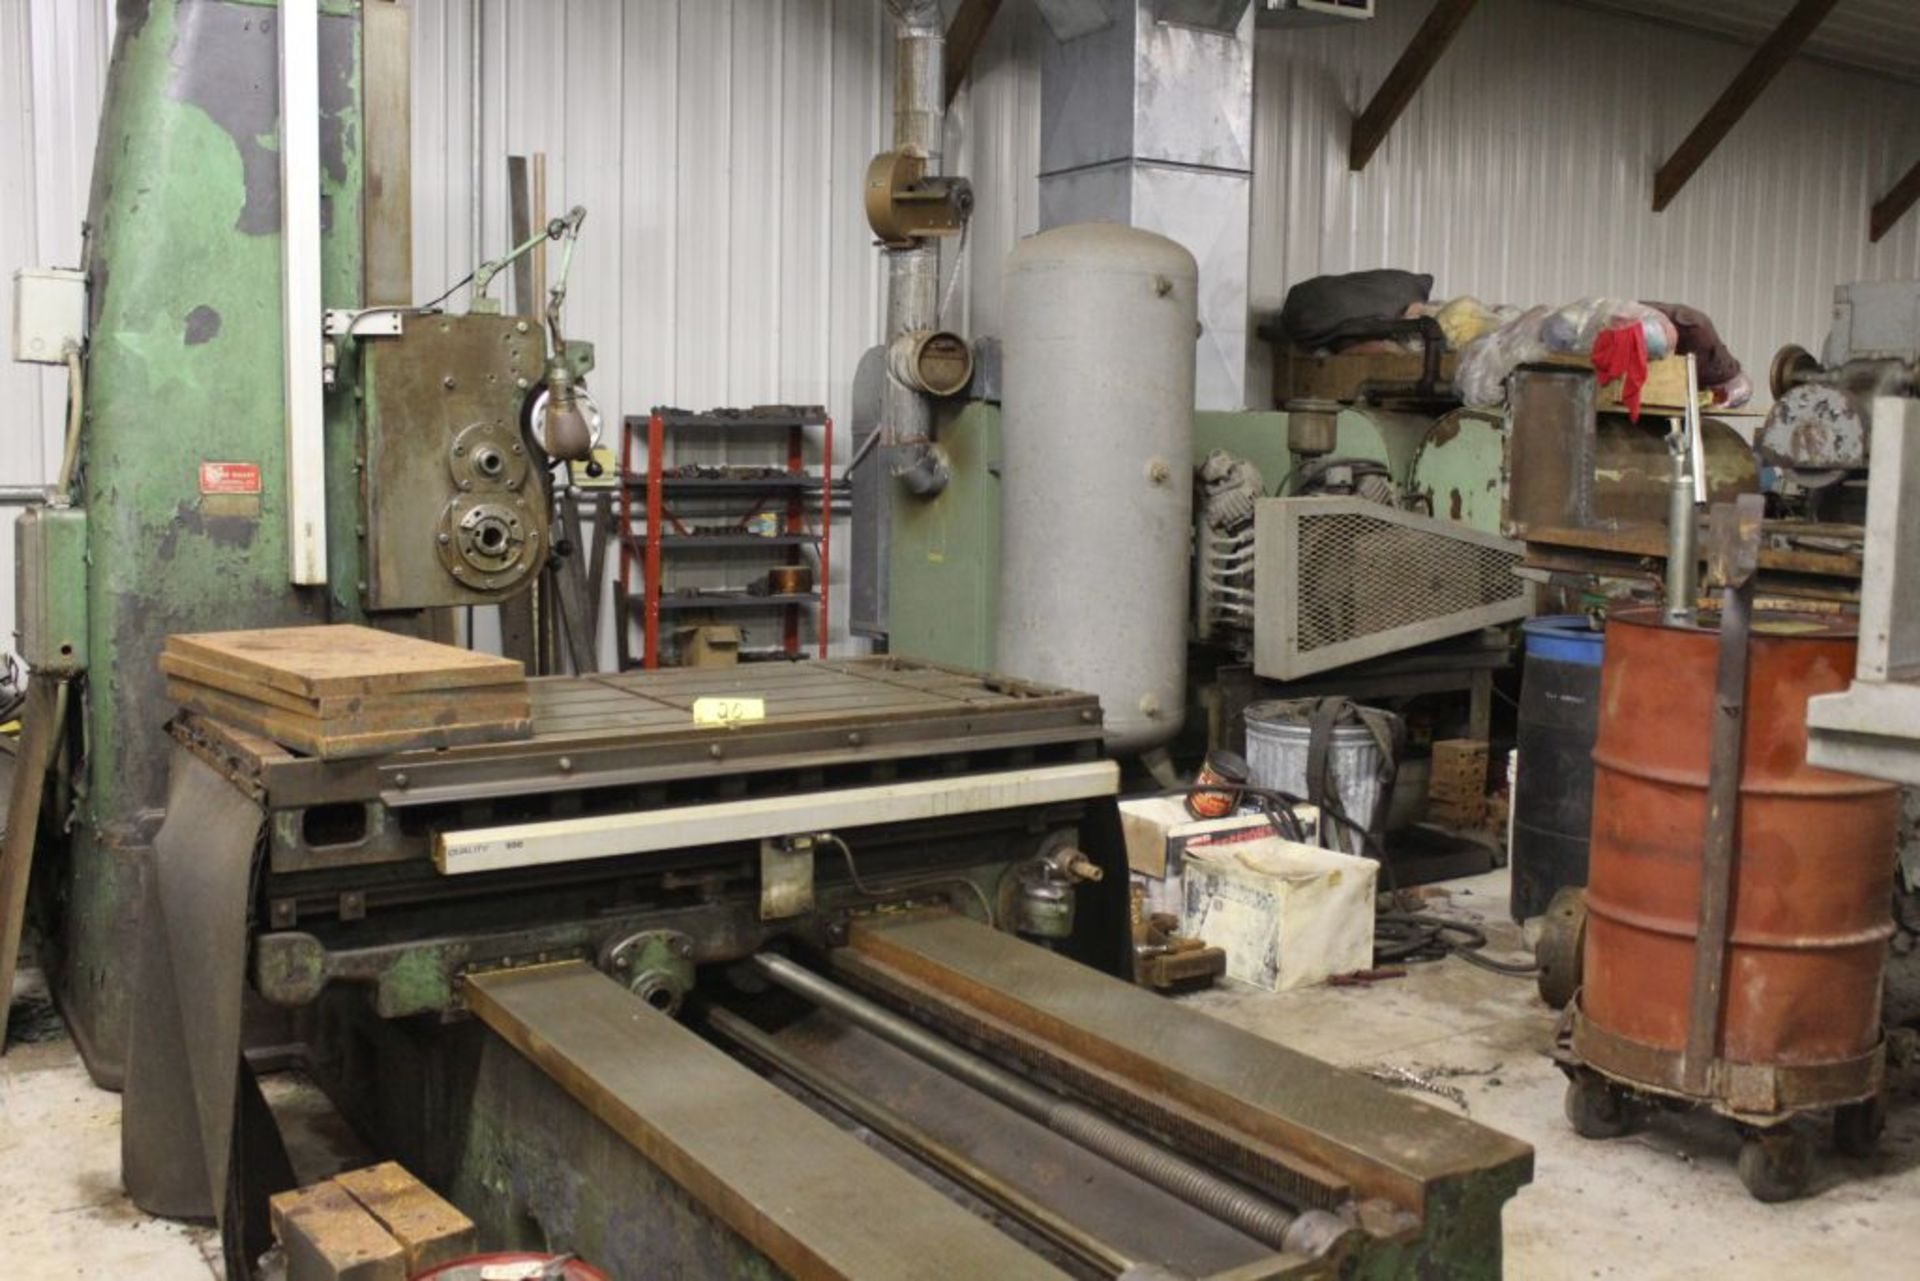 """Giddings & Lewis boring mill, No 30, 30"""" x 62"""" bed, 55"""" height adjustment, 13"""", EG&G digital read - Image 10 of 13"""